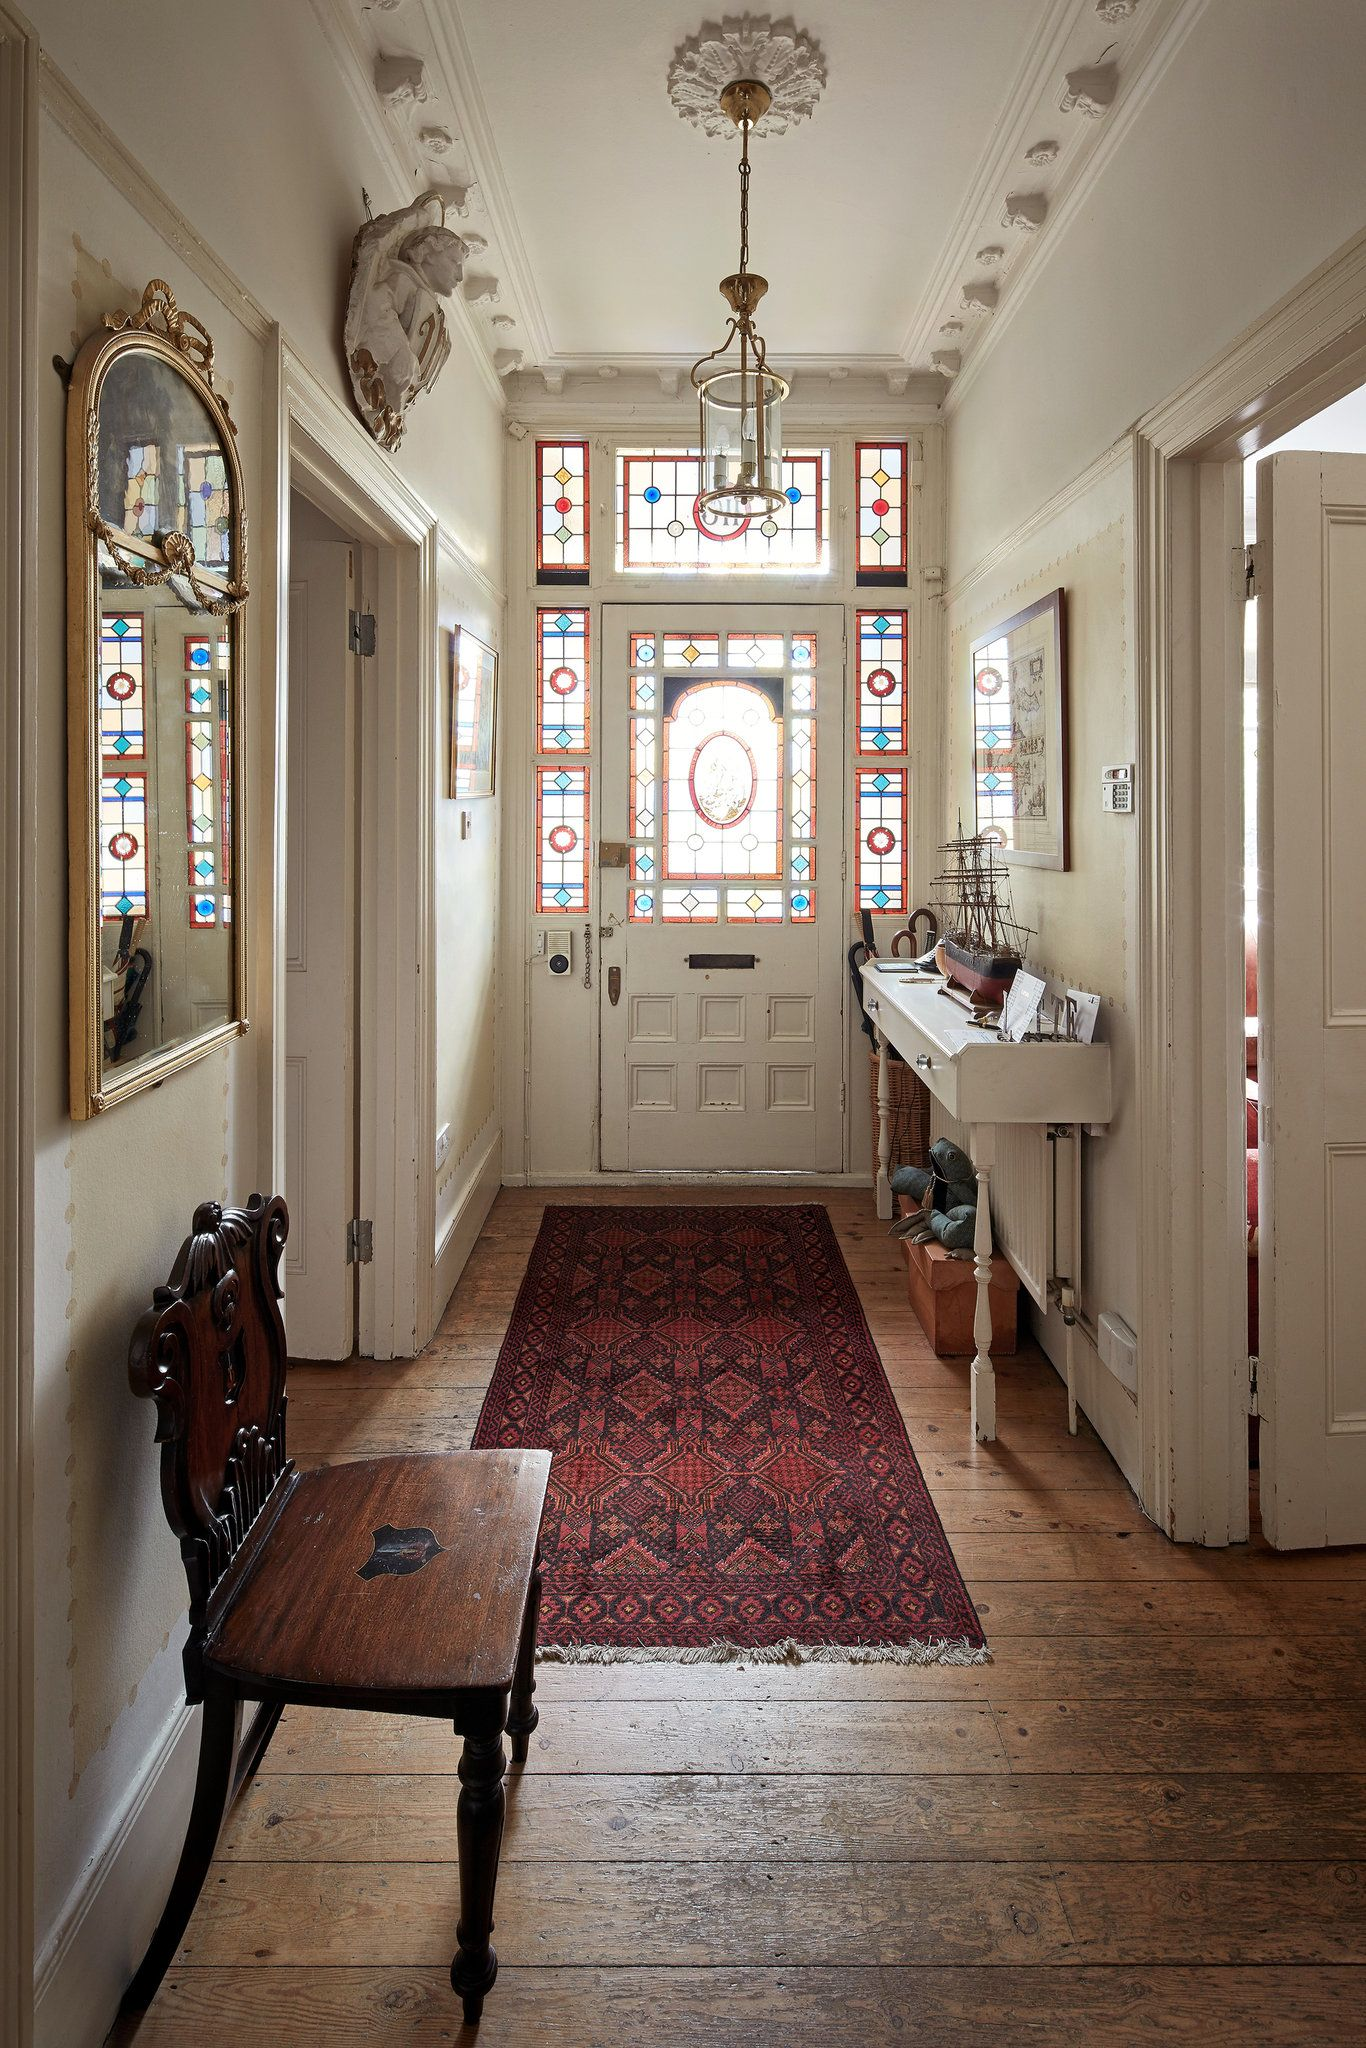 Victorian House Interior Designs In 2019: The Entry In A Victorian Townhouse In Southwest London